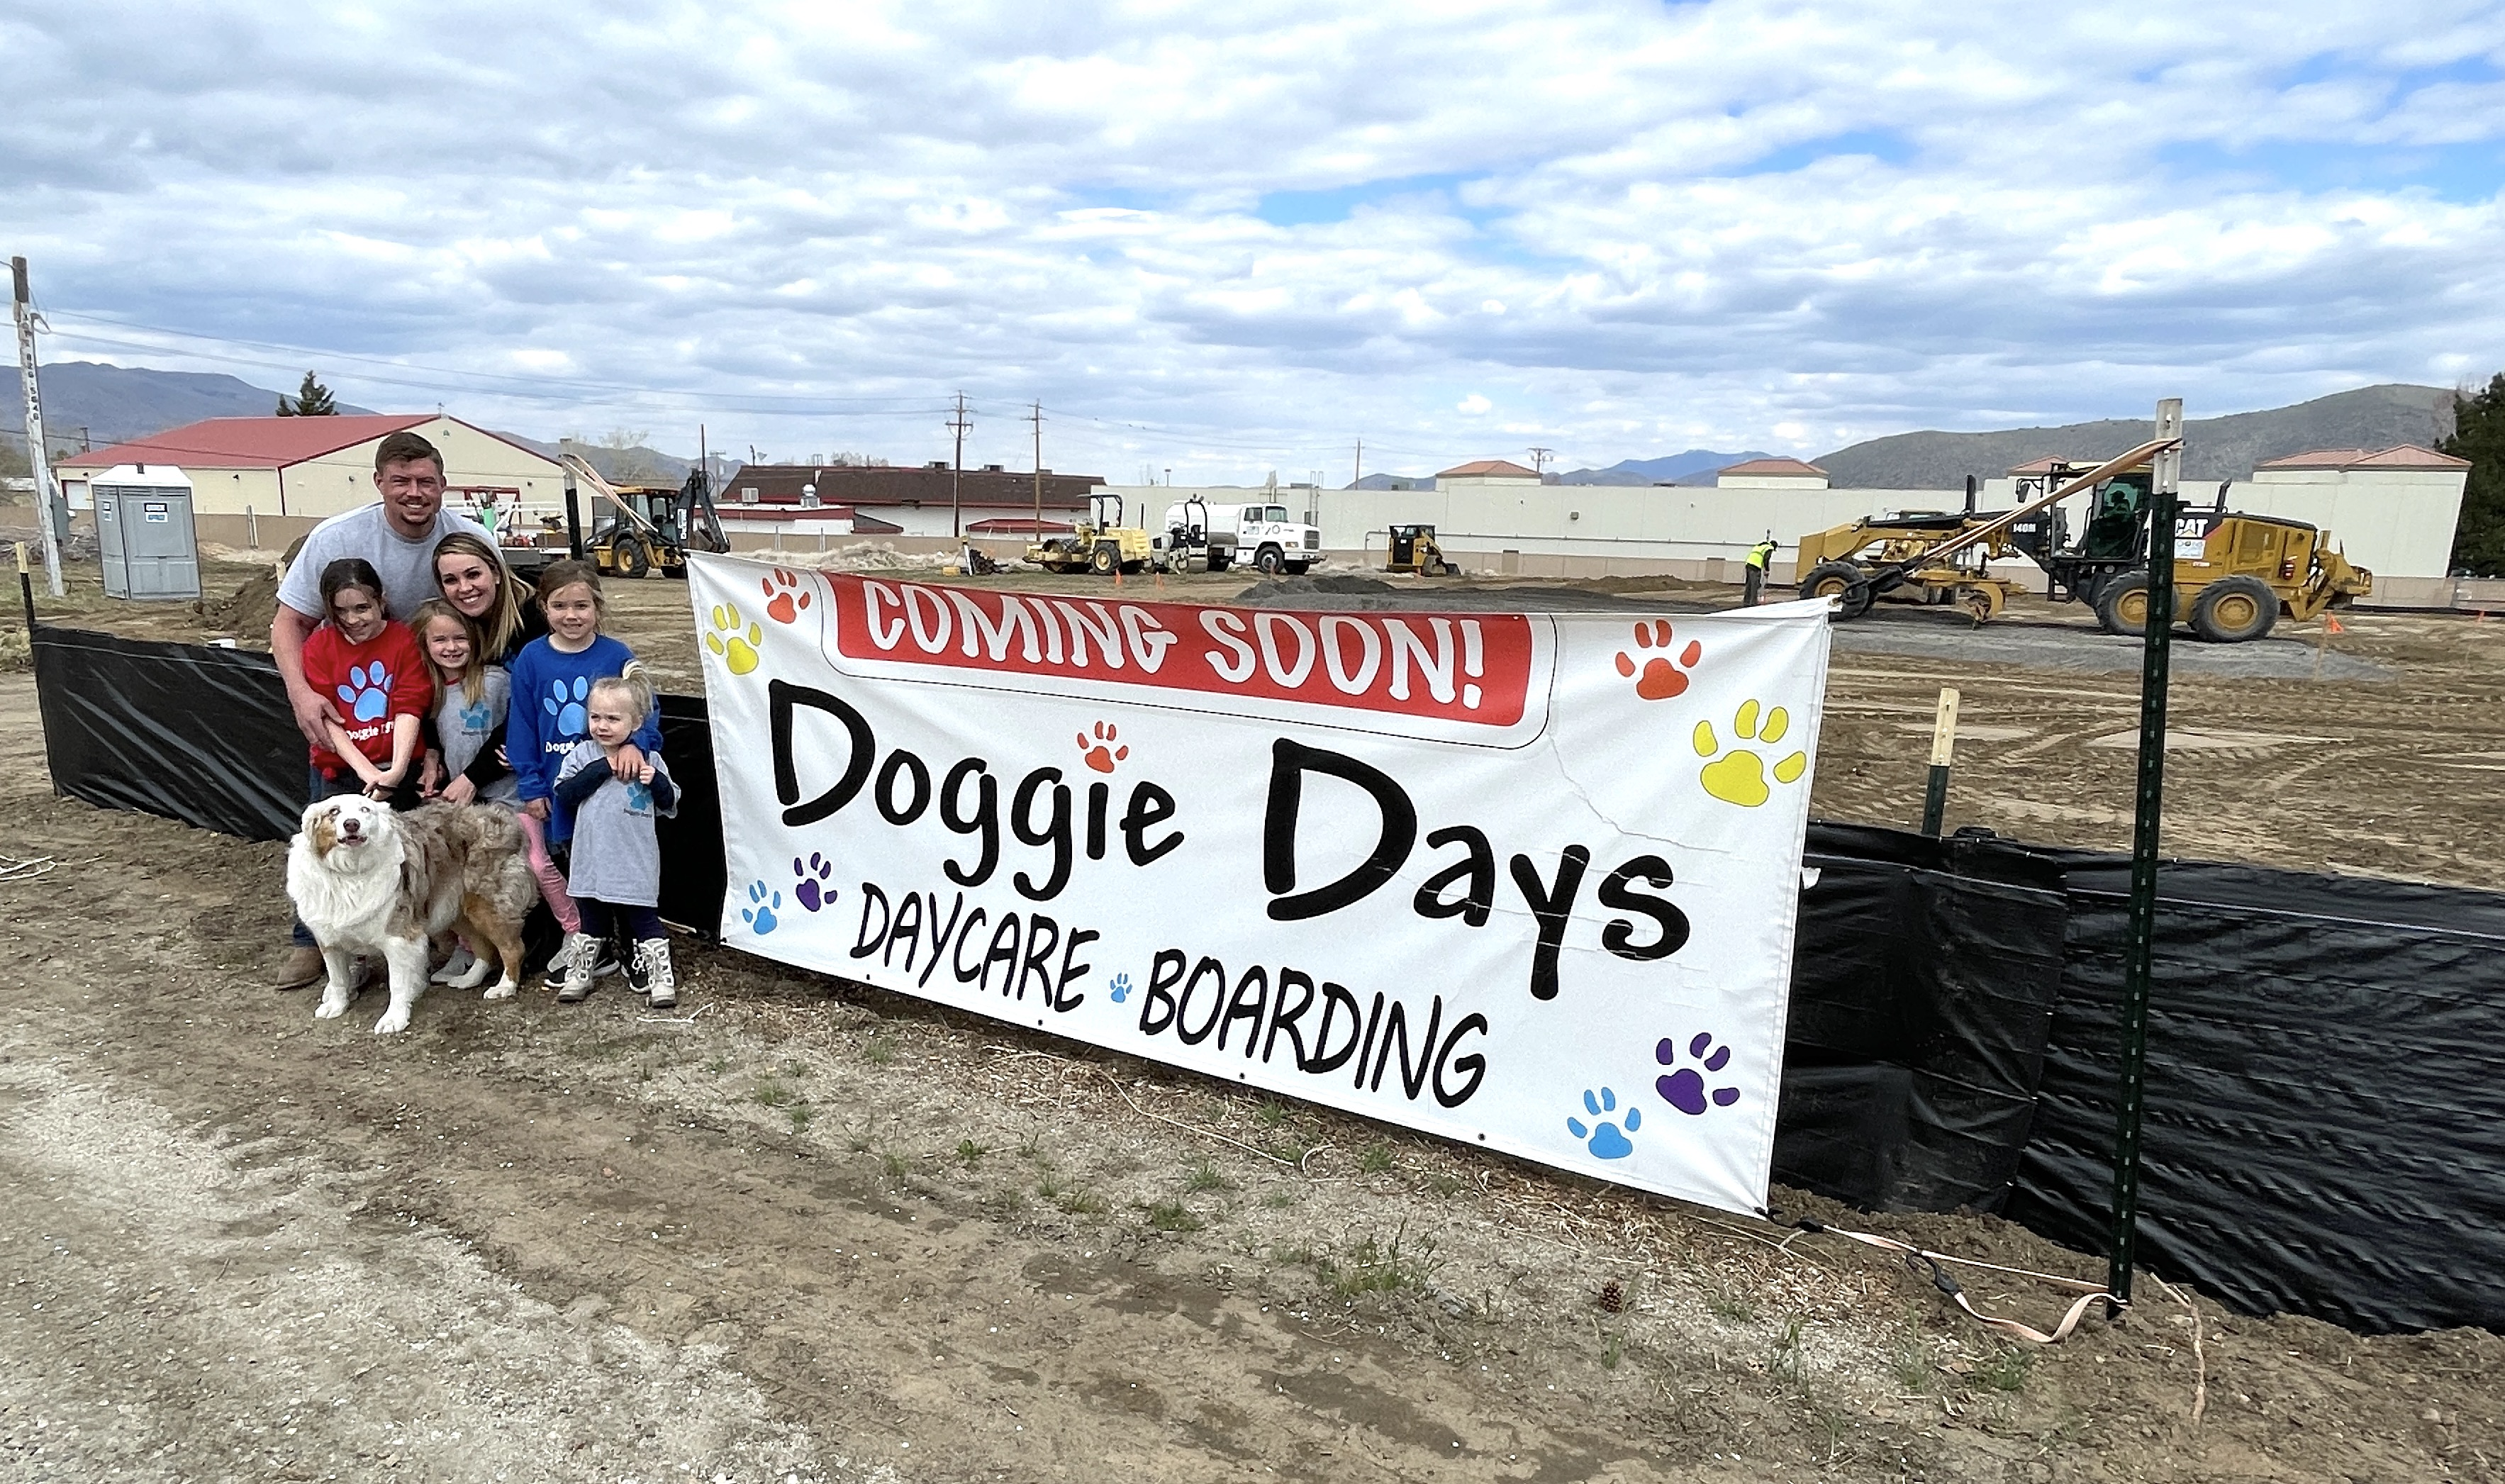 Dogs will be dogs in new boarding facility in Carson City